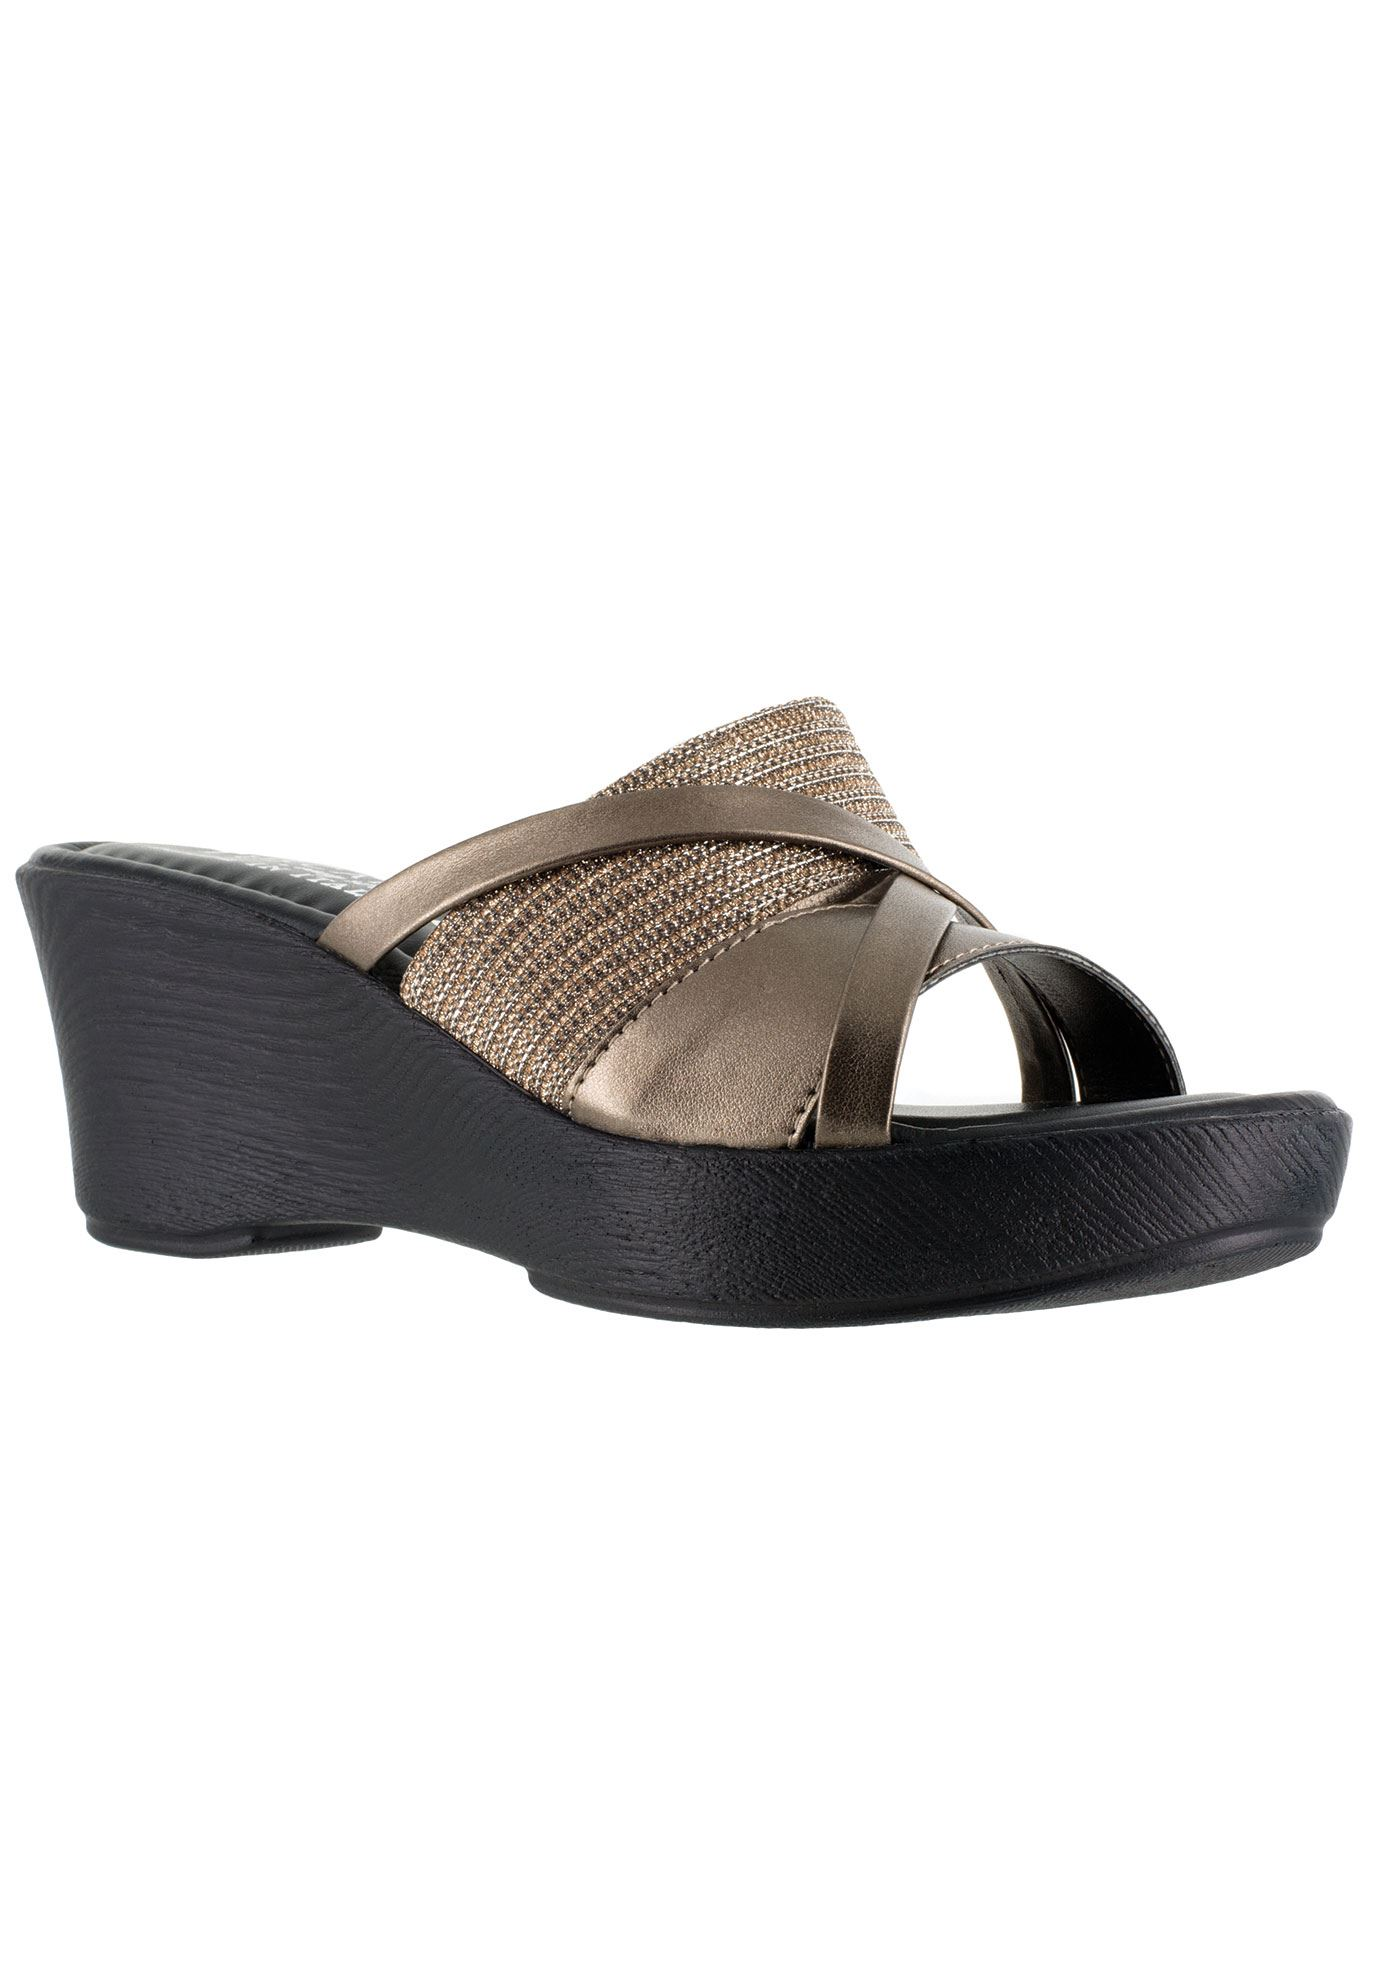 Lucette Sandals by Easy Street®,